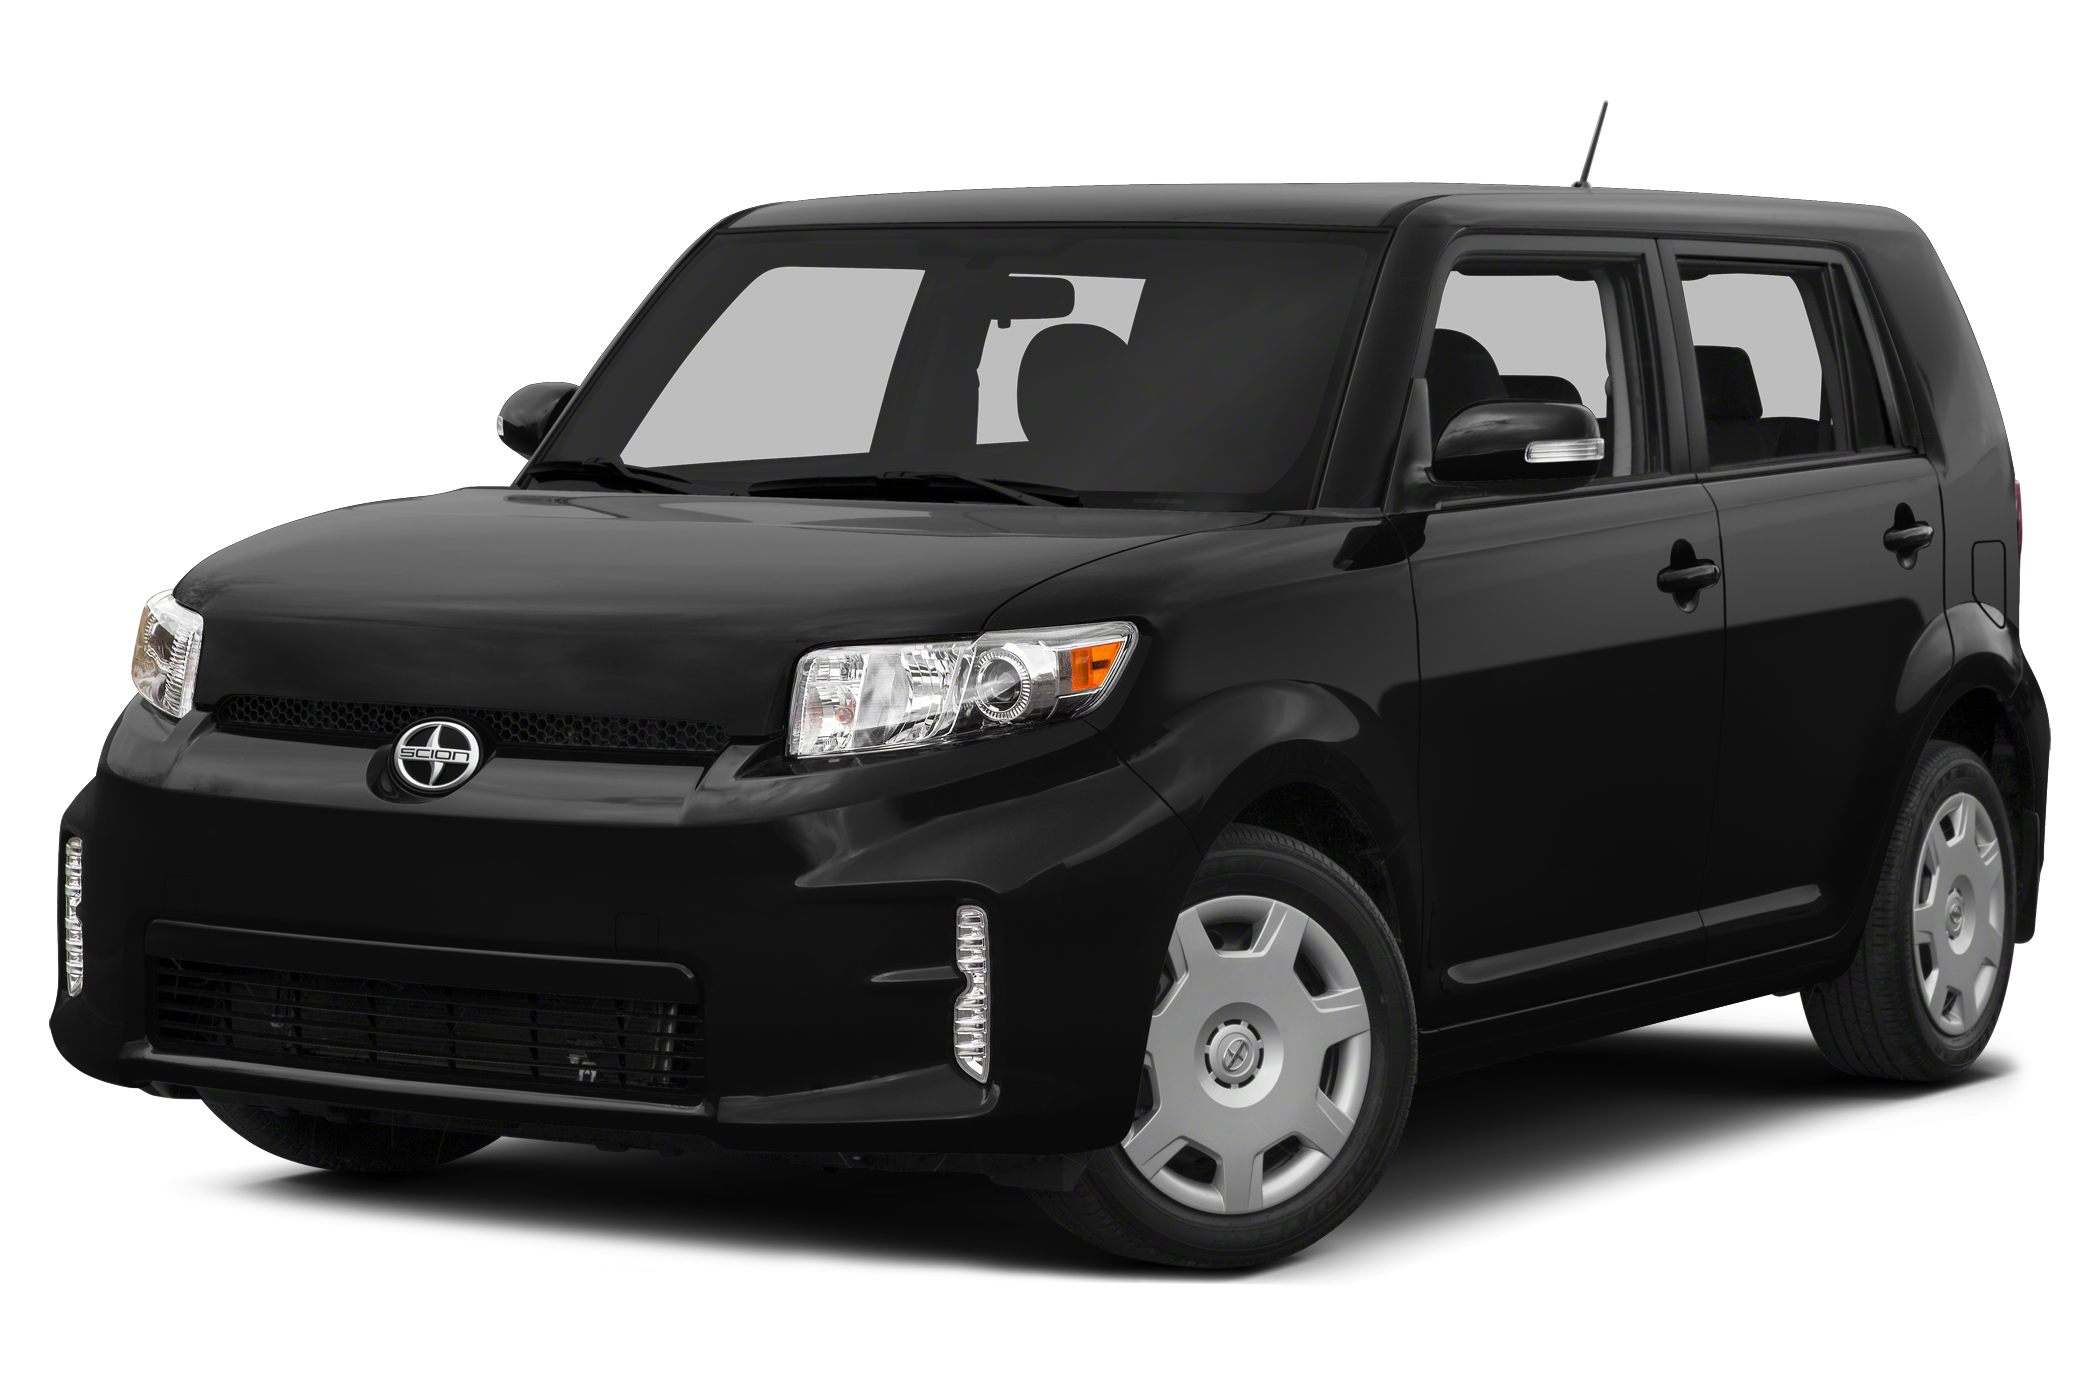 2015 Scion xB Base FUEL EFFICIENT 28 MPG Hwy22 MPG City Bluetooth Overhead Airbag Back-Up Camer